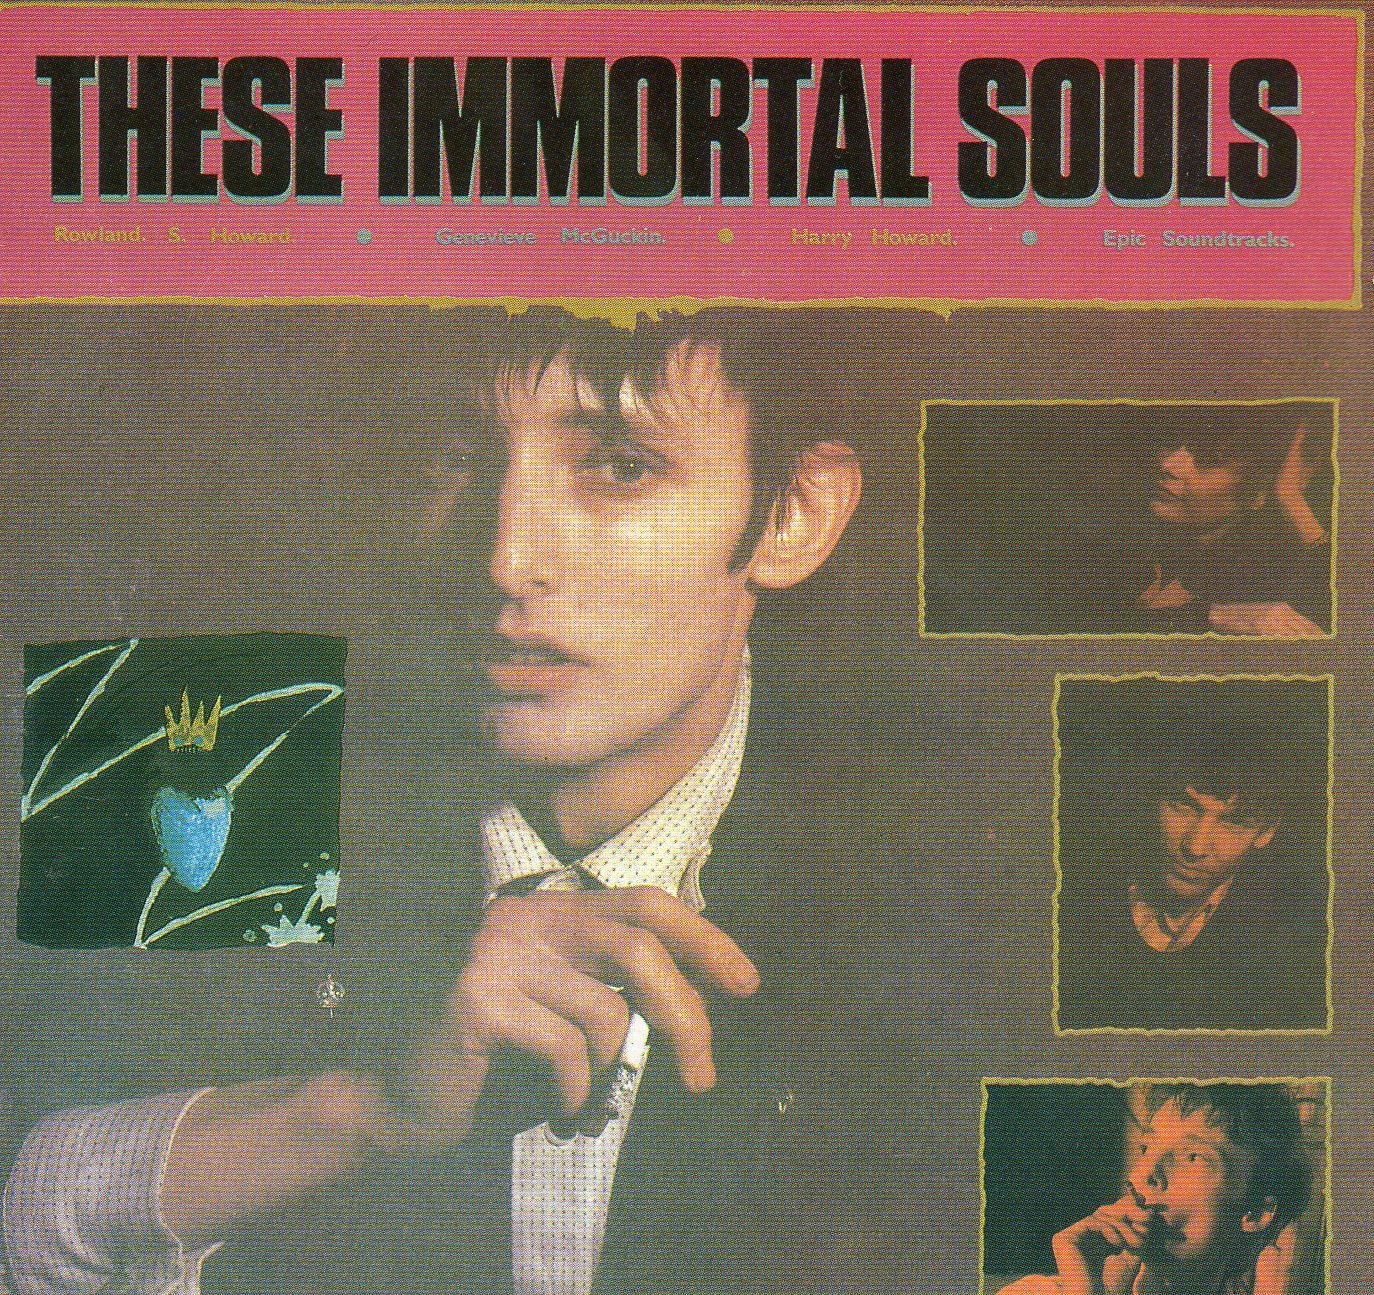 These Immortal Souls -Get Lost (Don't Lie!)